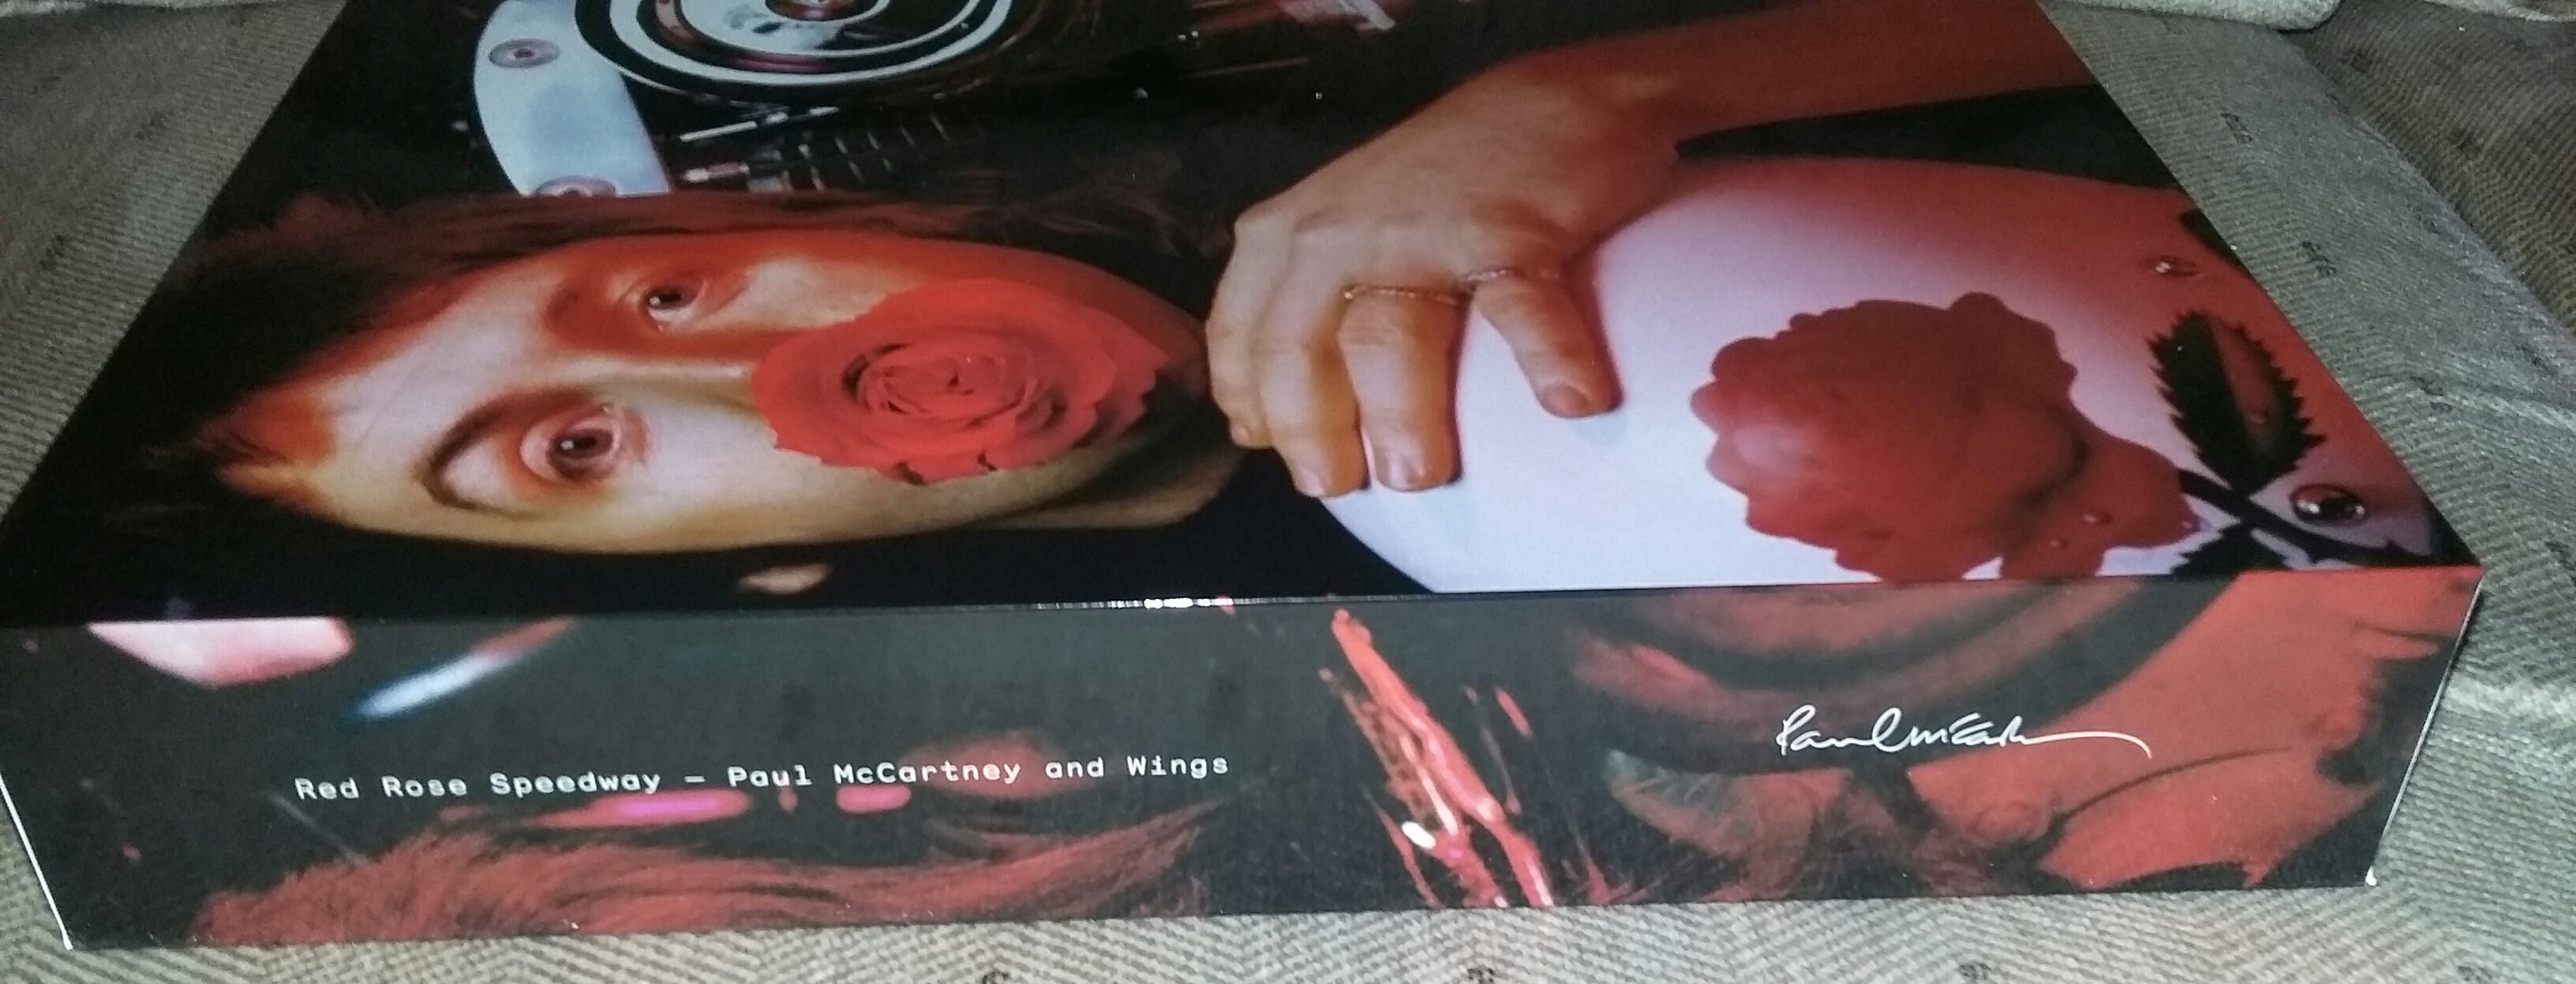 """Red Rose Speedway"""" Super Deluxe Box Set by Paul McCartney"""